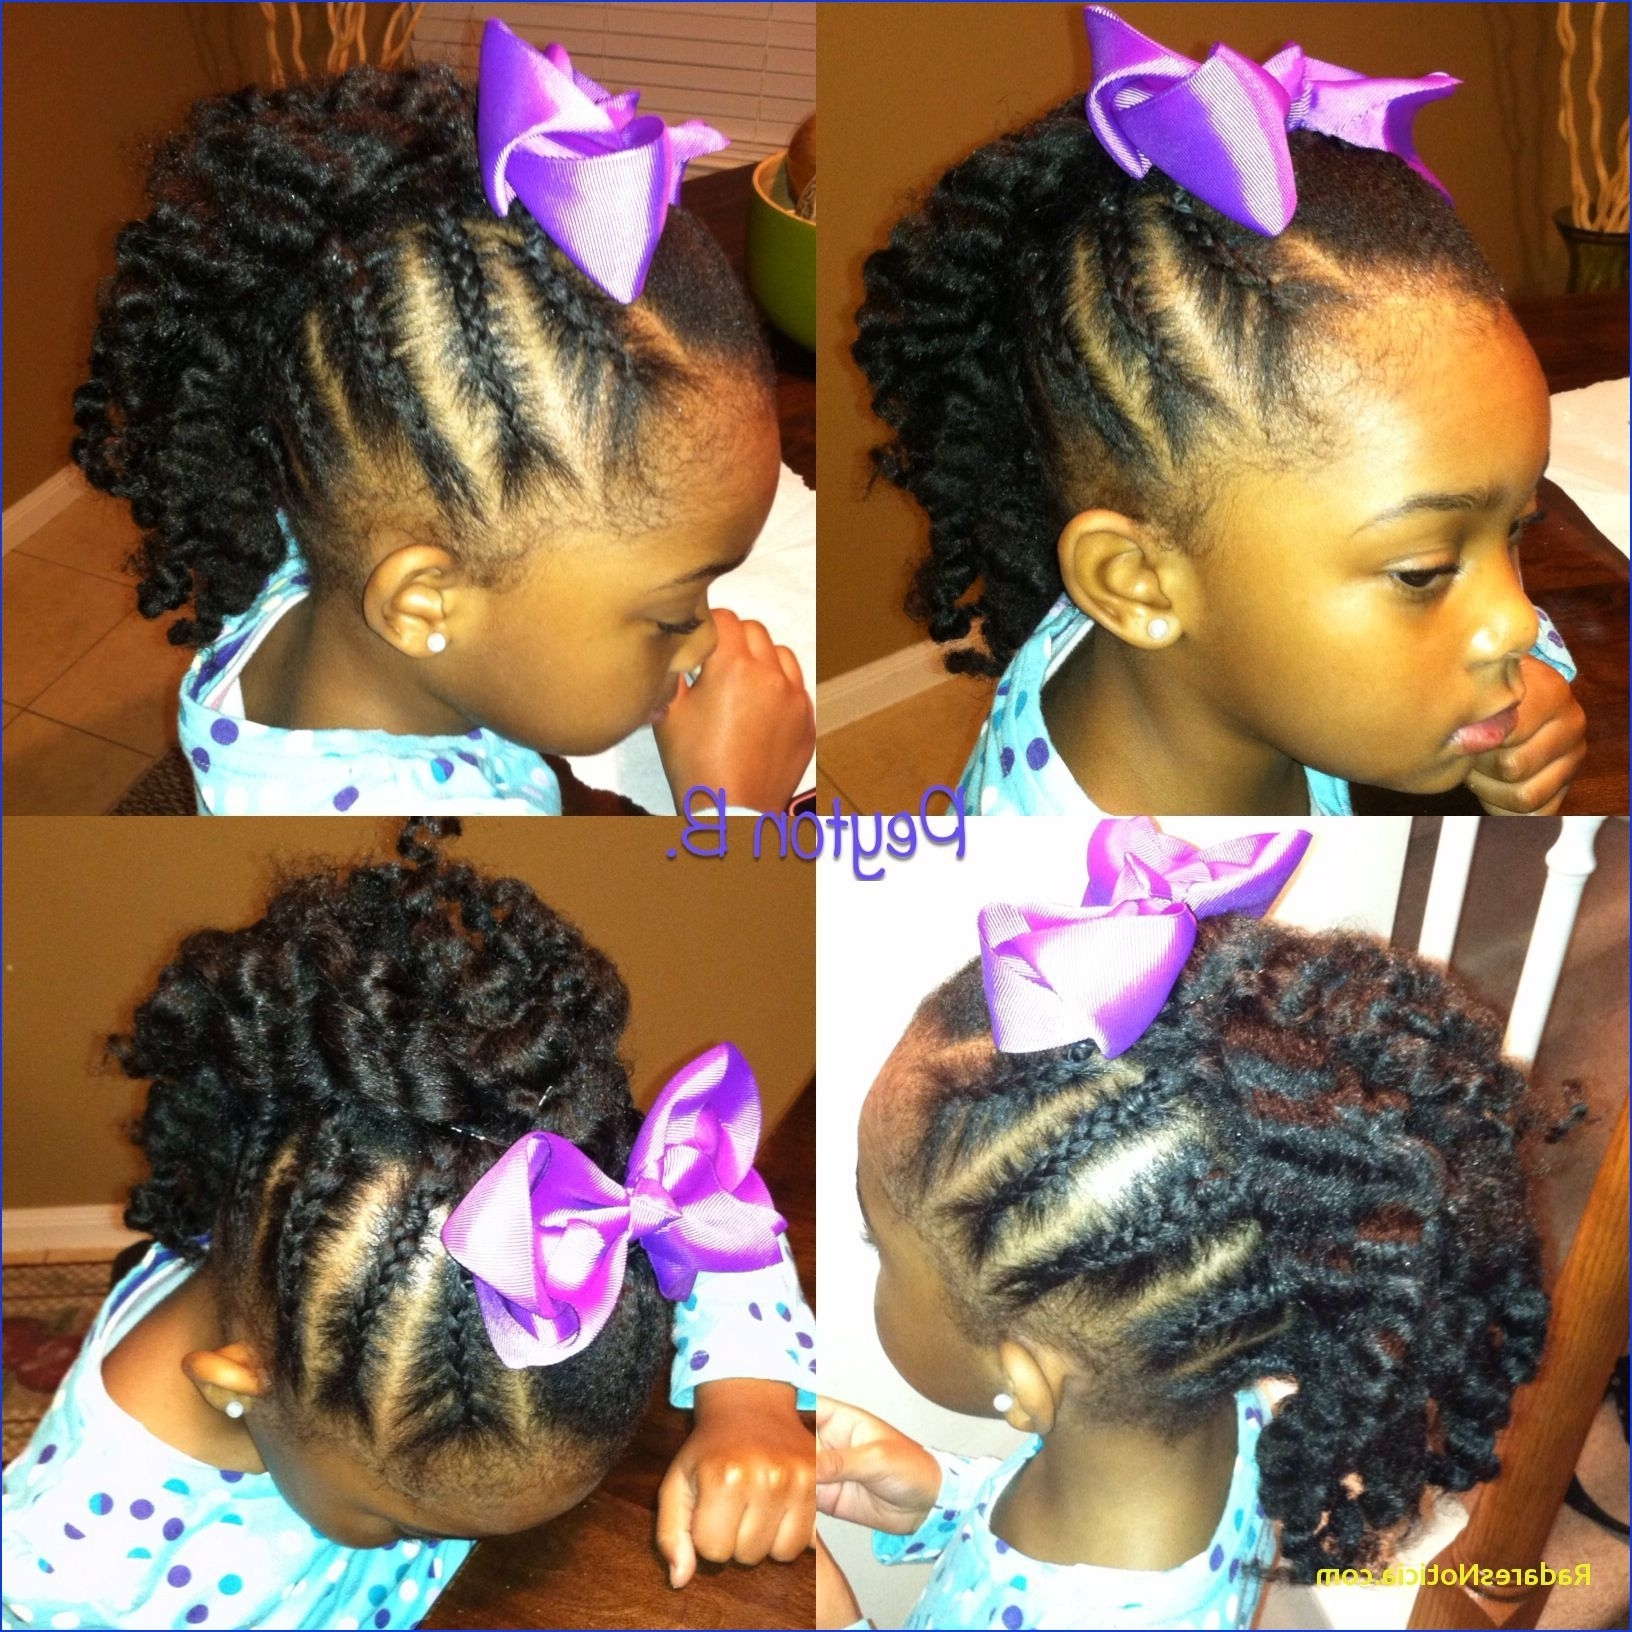 Well Known Braided Ponytail Mohawk Hairstyles Throughout Braided Ponytail Hairstyles For Black Hair Braided Mohawk With (View 20 of 20)